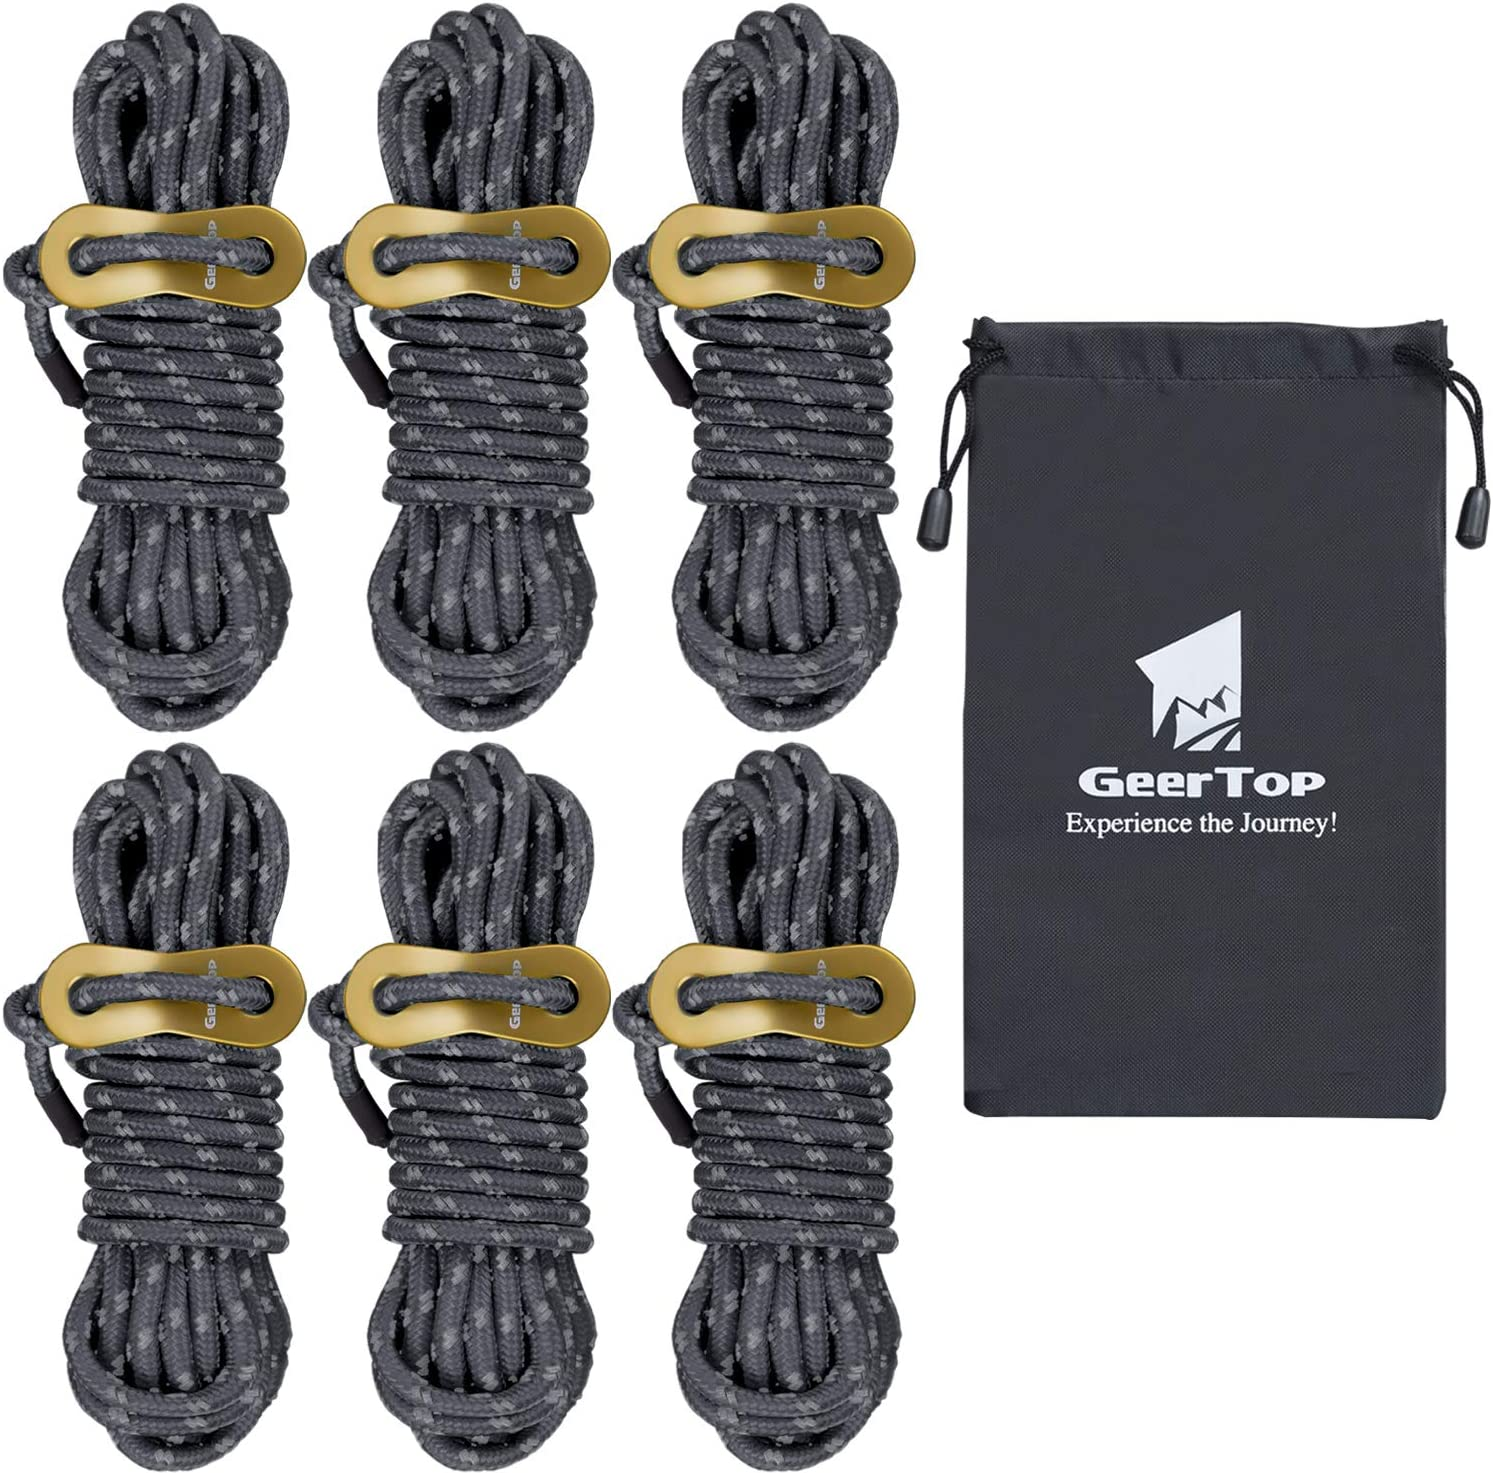 Outdoor Camping Hiking Tent Canopy Awning Rope Guy Line Cord Binding Materials